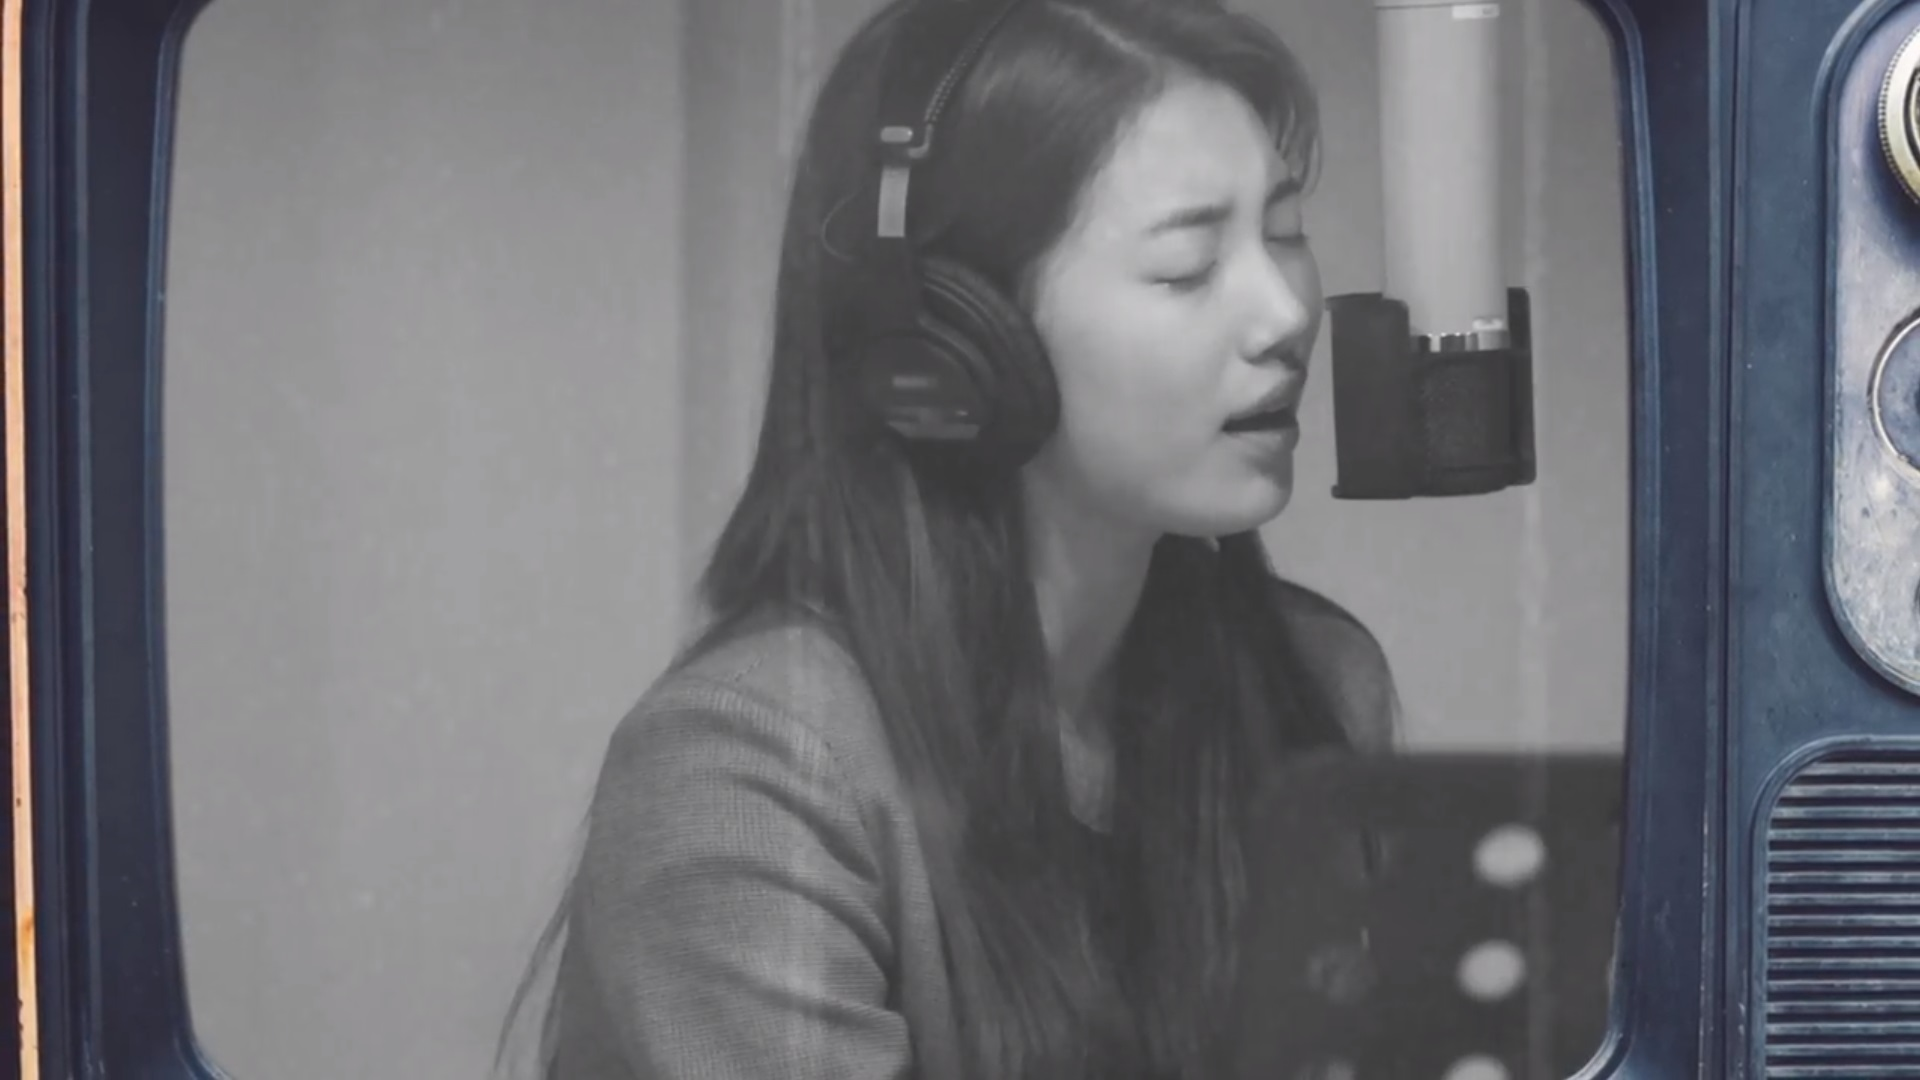 Download Suzy - 사랑하기 때문에 (Because I Love You) Mp3